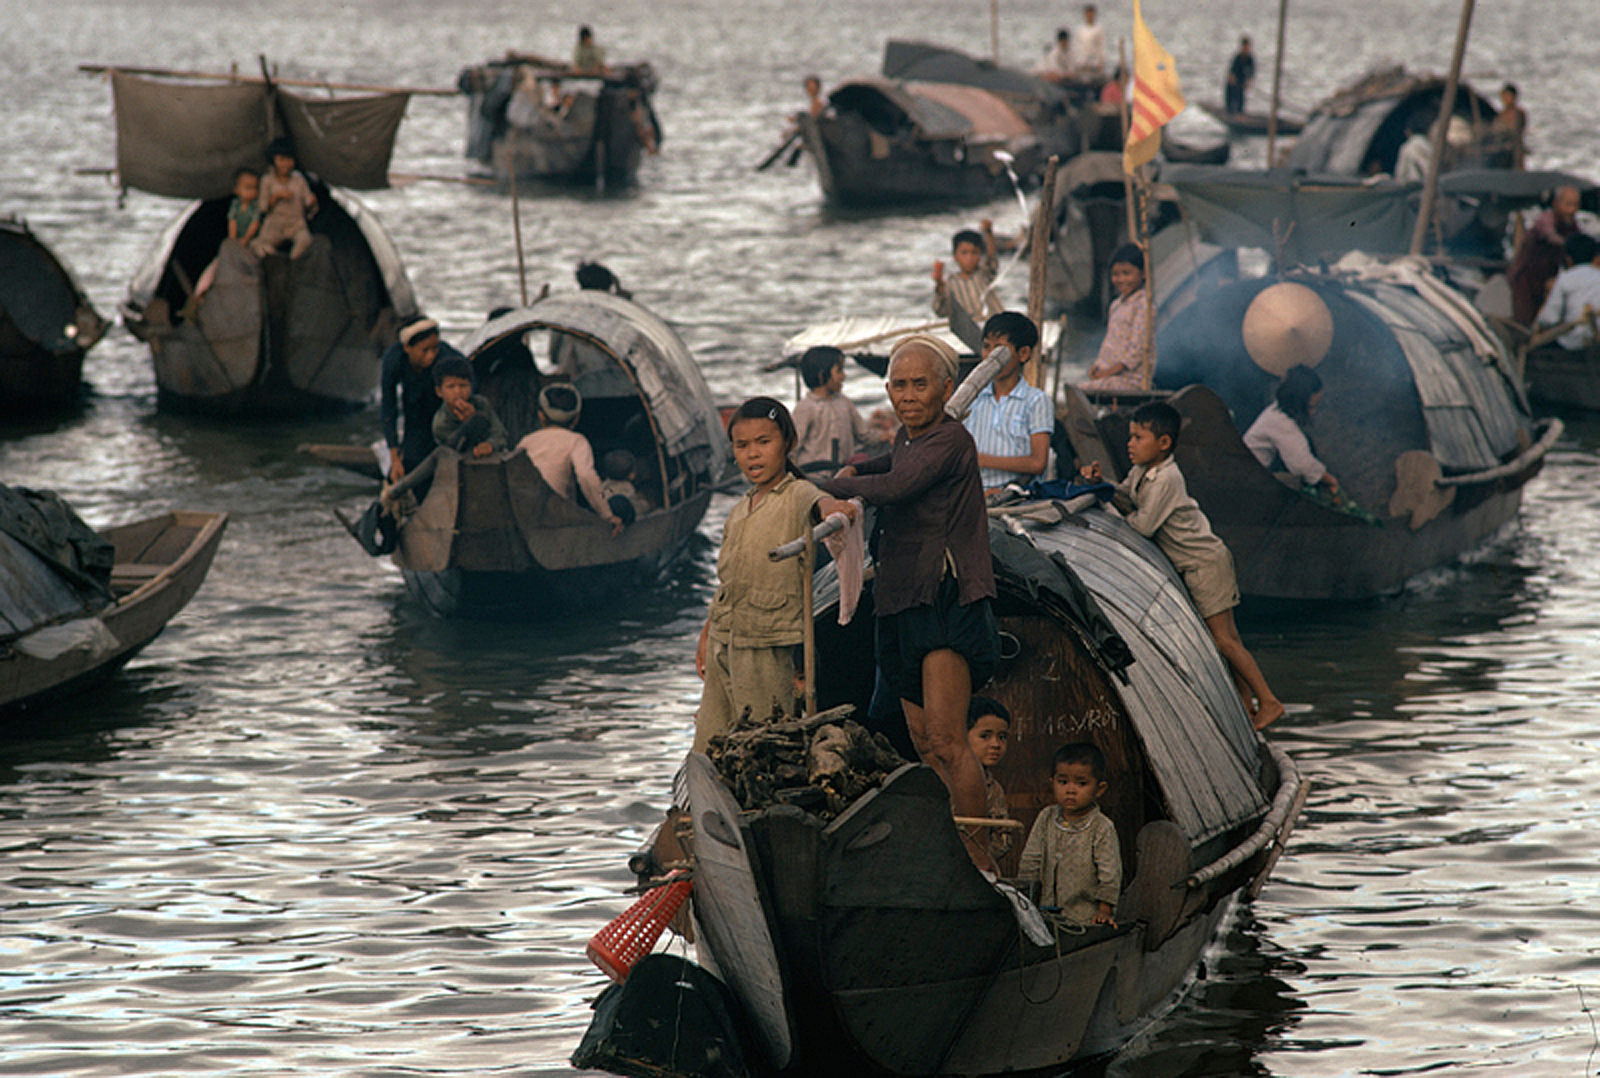 Vietnamese migrants in small boats at sea